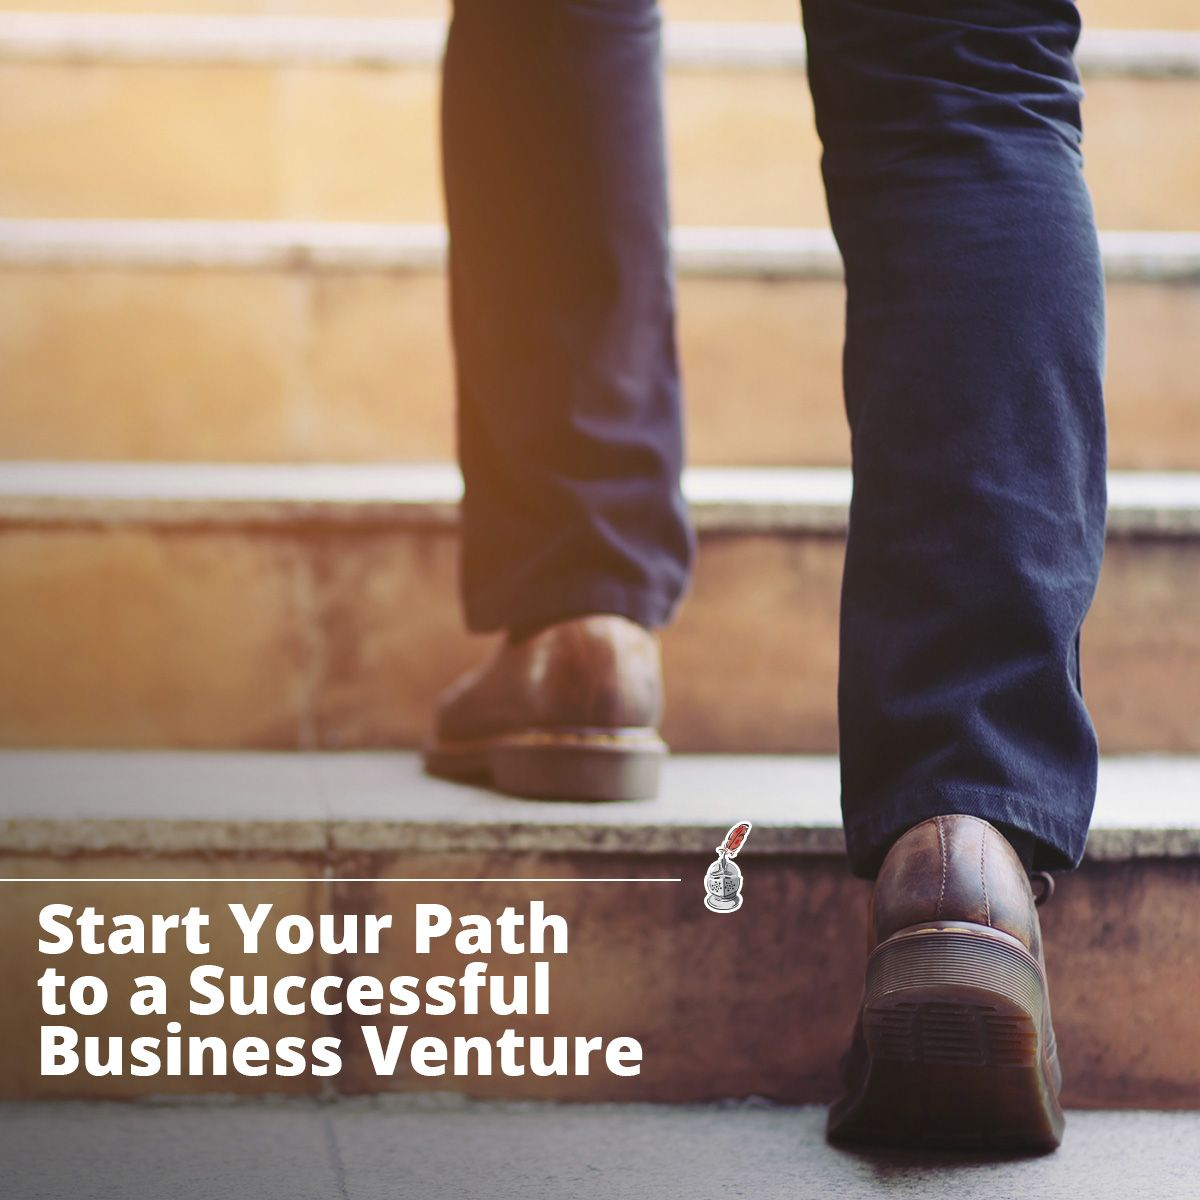 Start Your Path to a Successful Business Venture